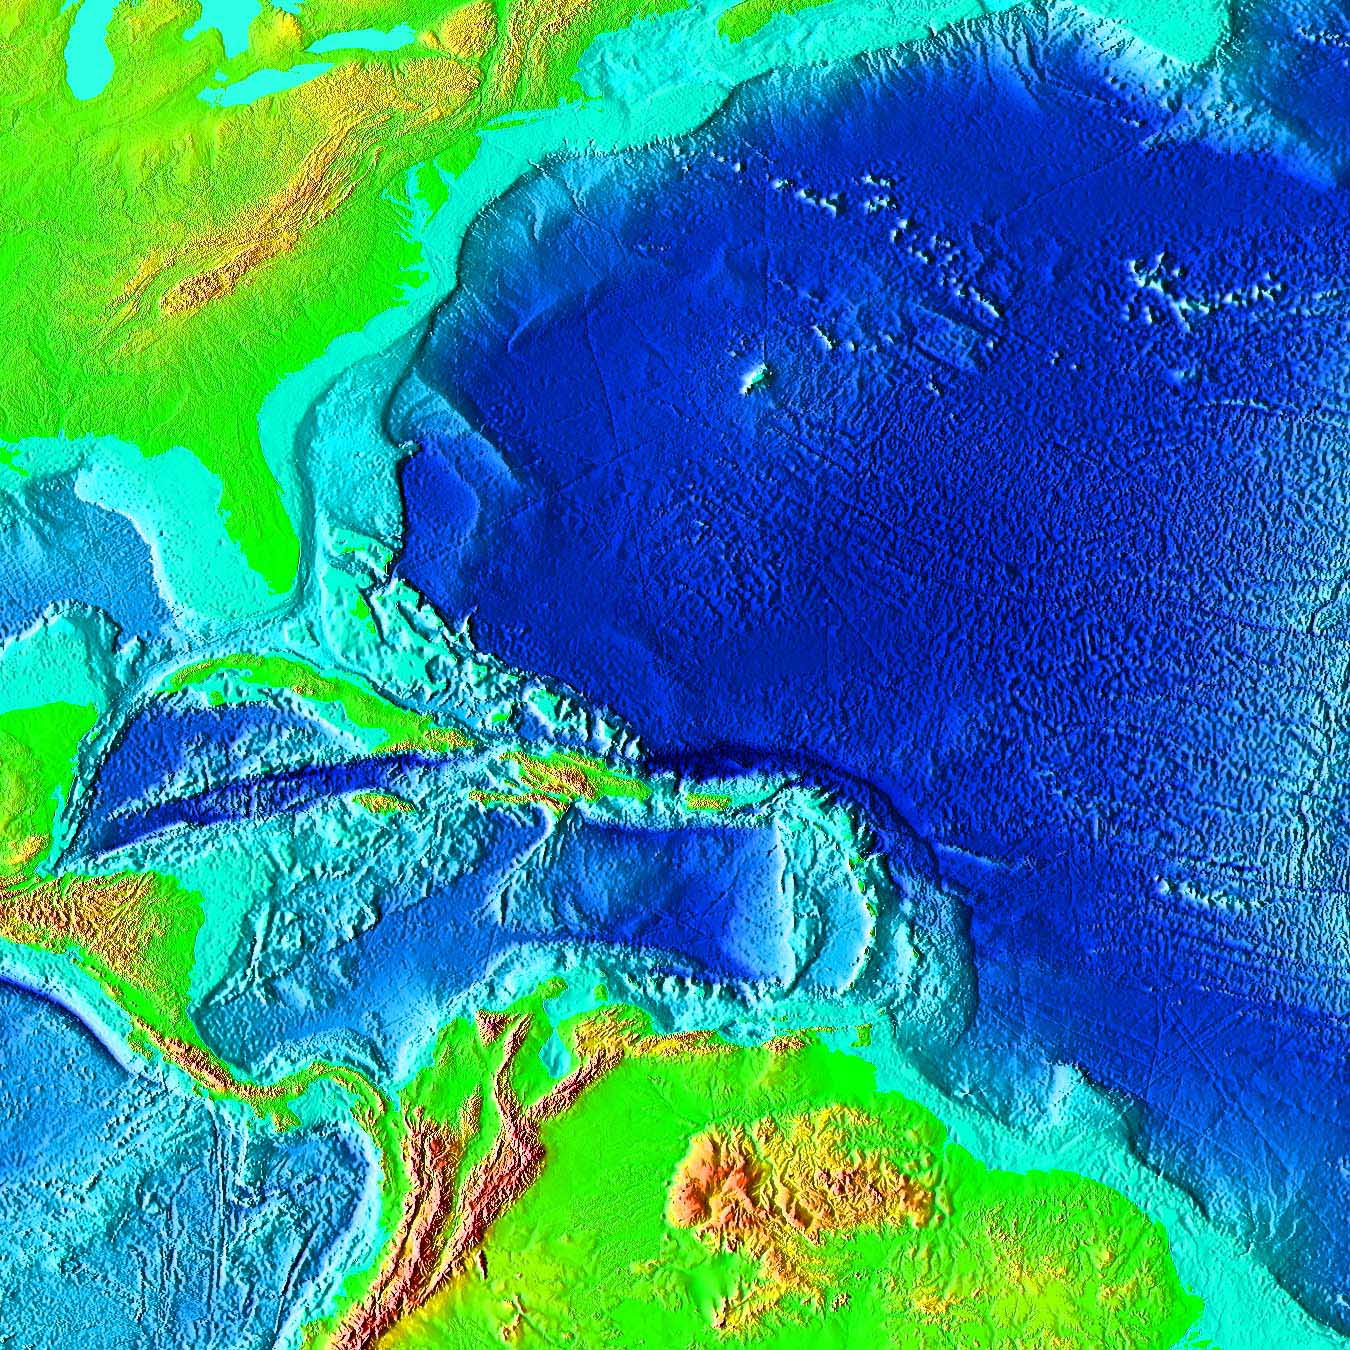 an analysis of the possibility that there is a sunken city in the atlantic ocean It's a chance to take a one-of-a-kind selfie – after all, it's not everyday you score  face time underwater with a mermaid off grand cayman or.